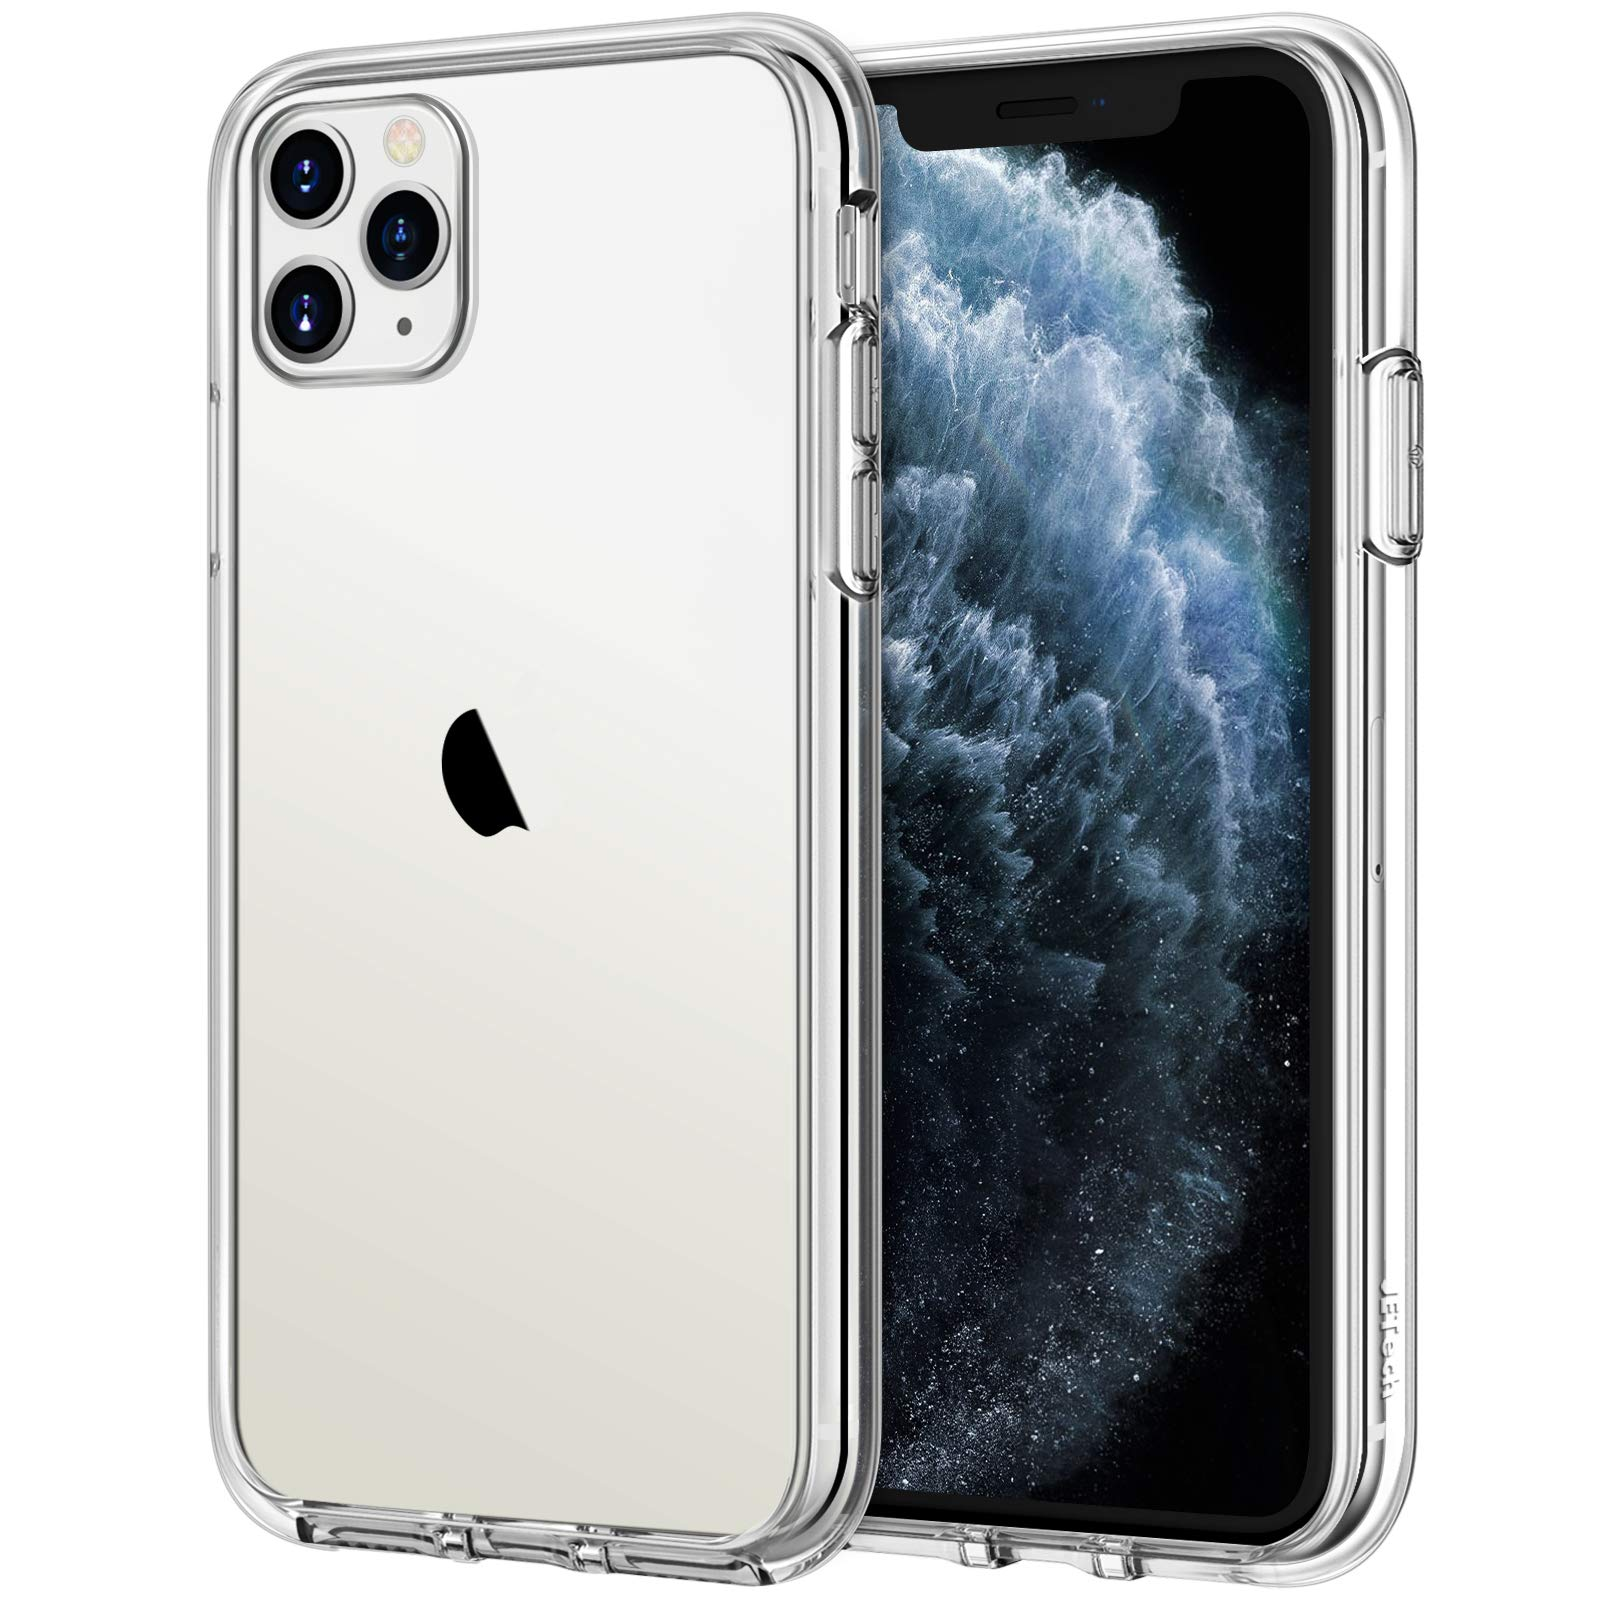 JETech Case for iPhone 11 Pro Max (2019), 6.5-Inch, Shockproof Transparent Bumper Cover, Anti-Scratch Clear Back, HD Clear